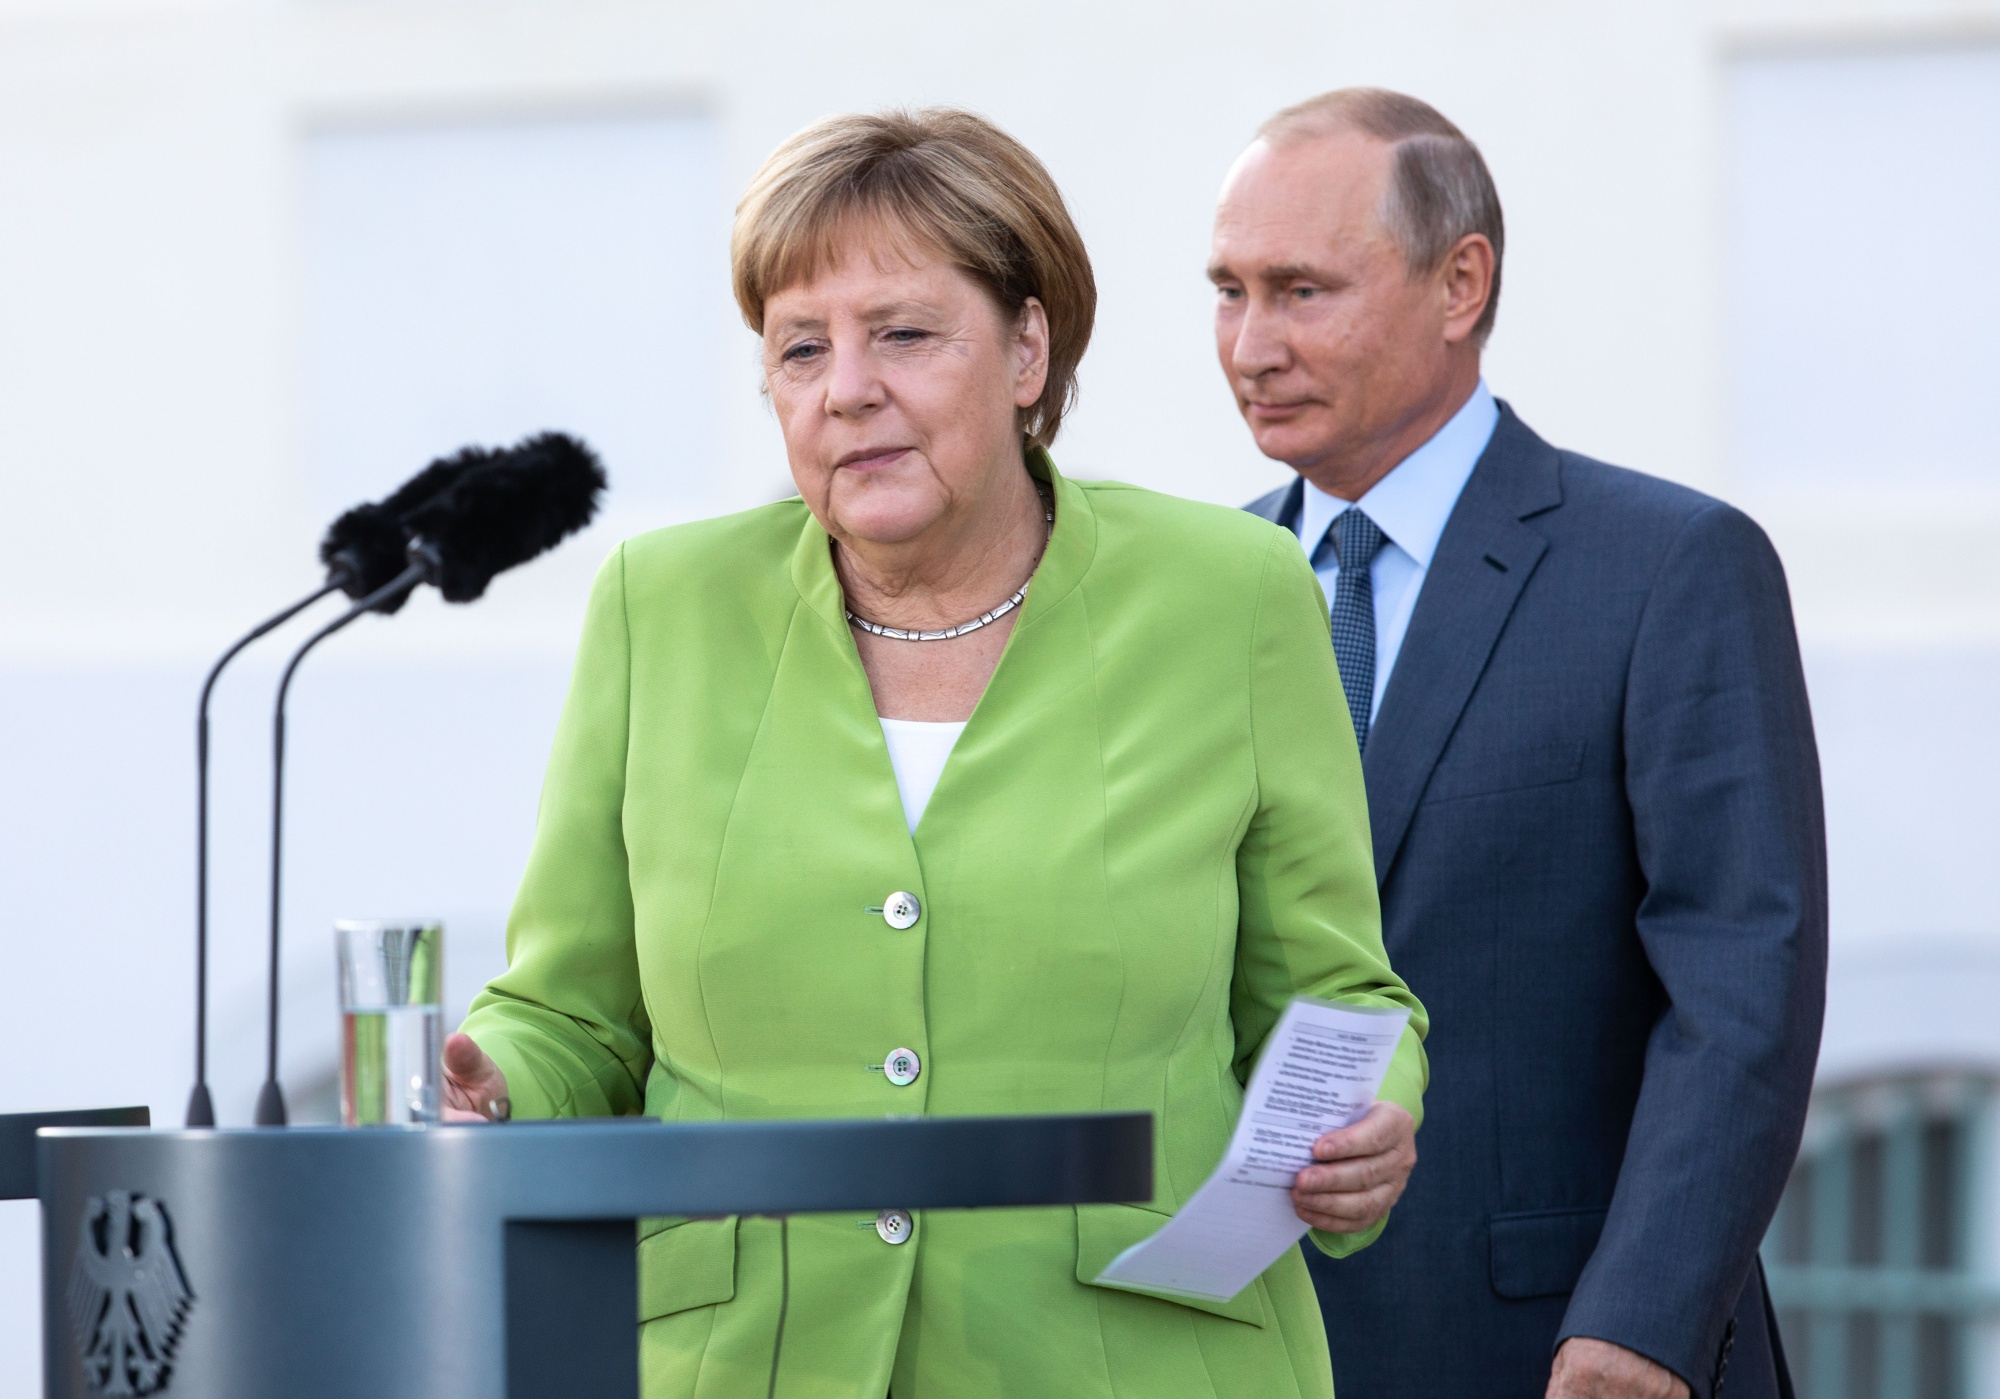 Russian Spy Scandal Germany Really Doesn't Want - Bloomberg